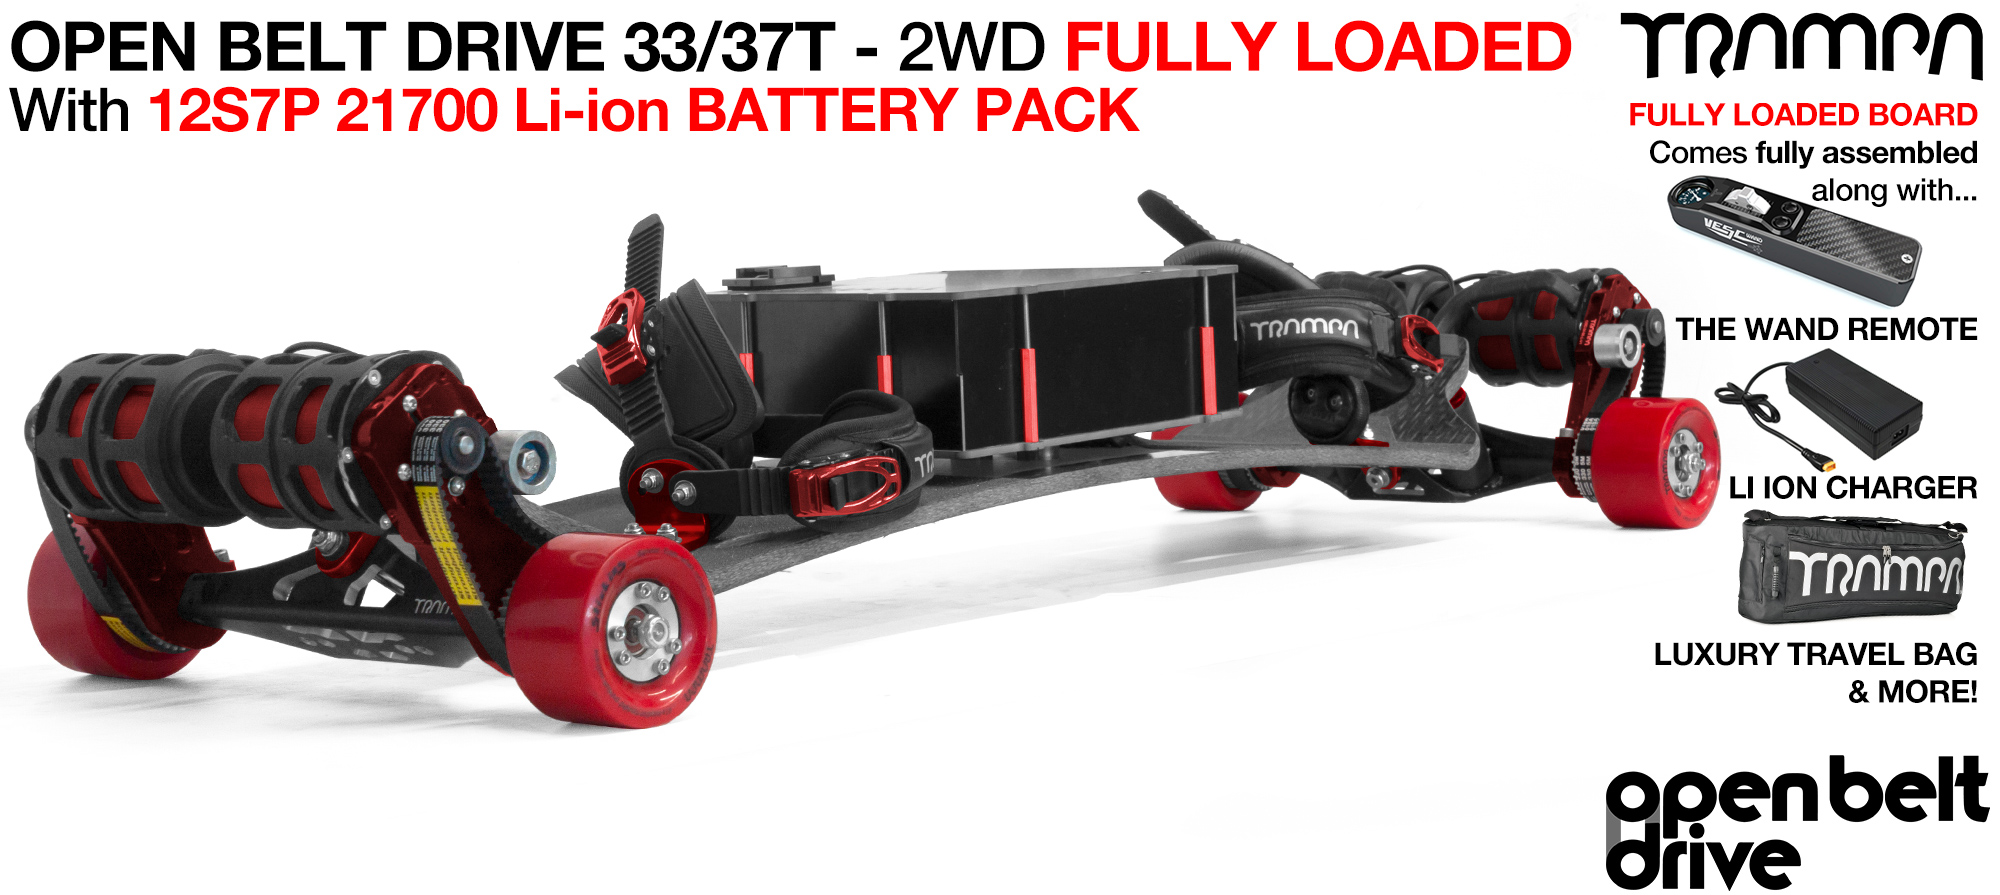 4WD 66T Open Belt Drive TRAMPA E-MTB with 83 or 90mm STICKIES Wheels & 33/37 Tooth Pulleys - LOADED